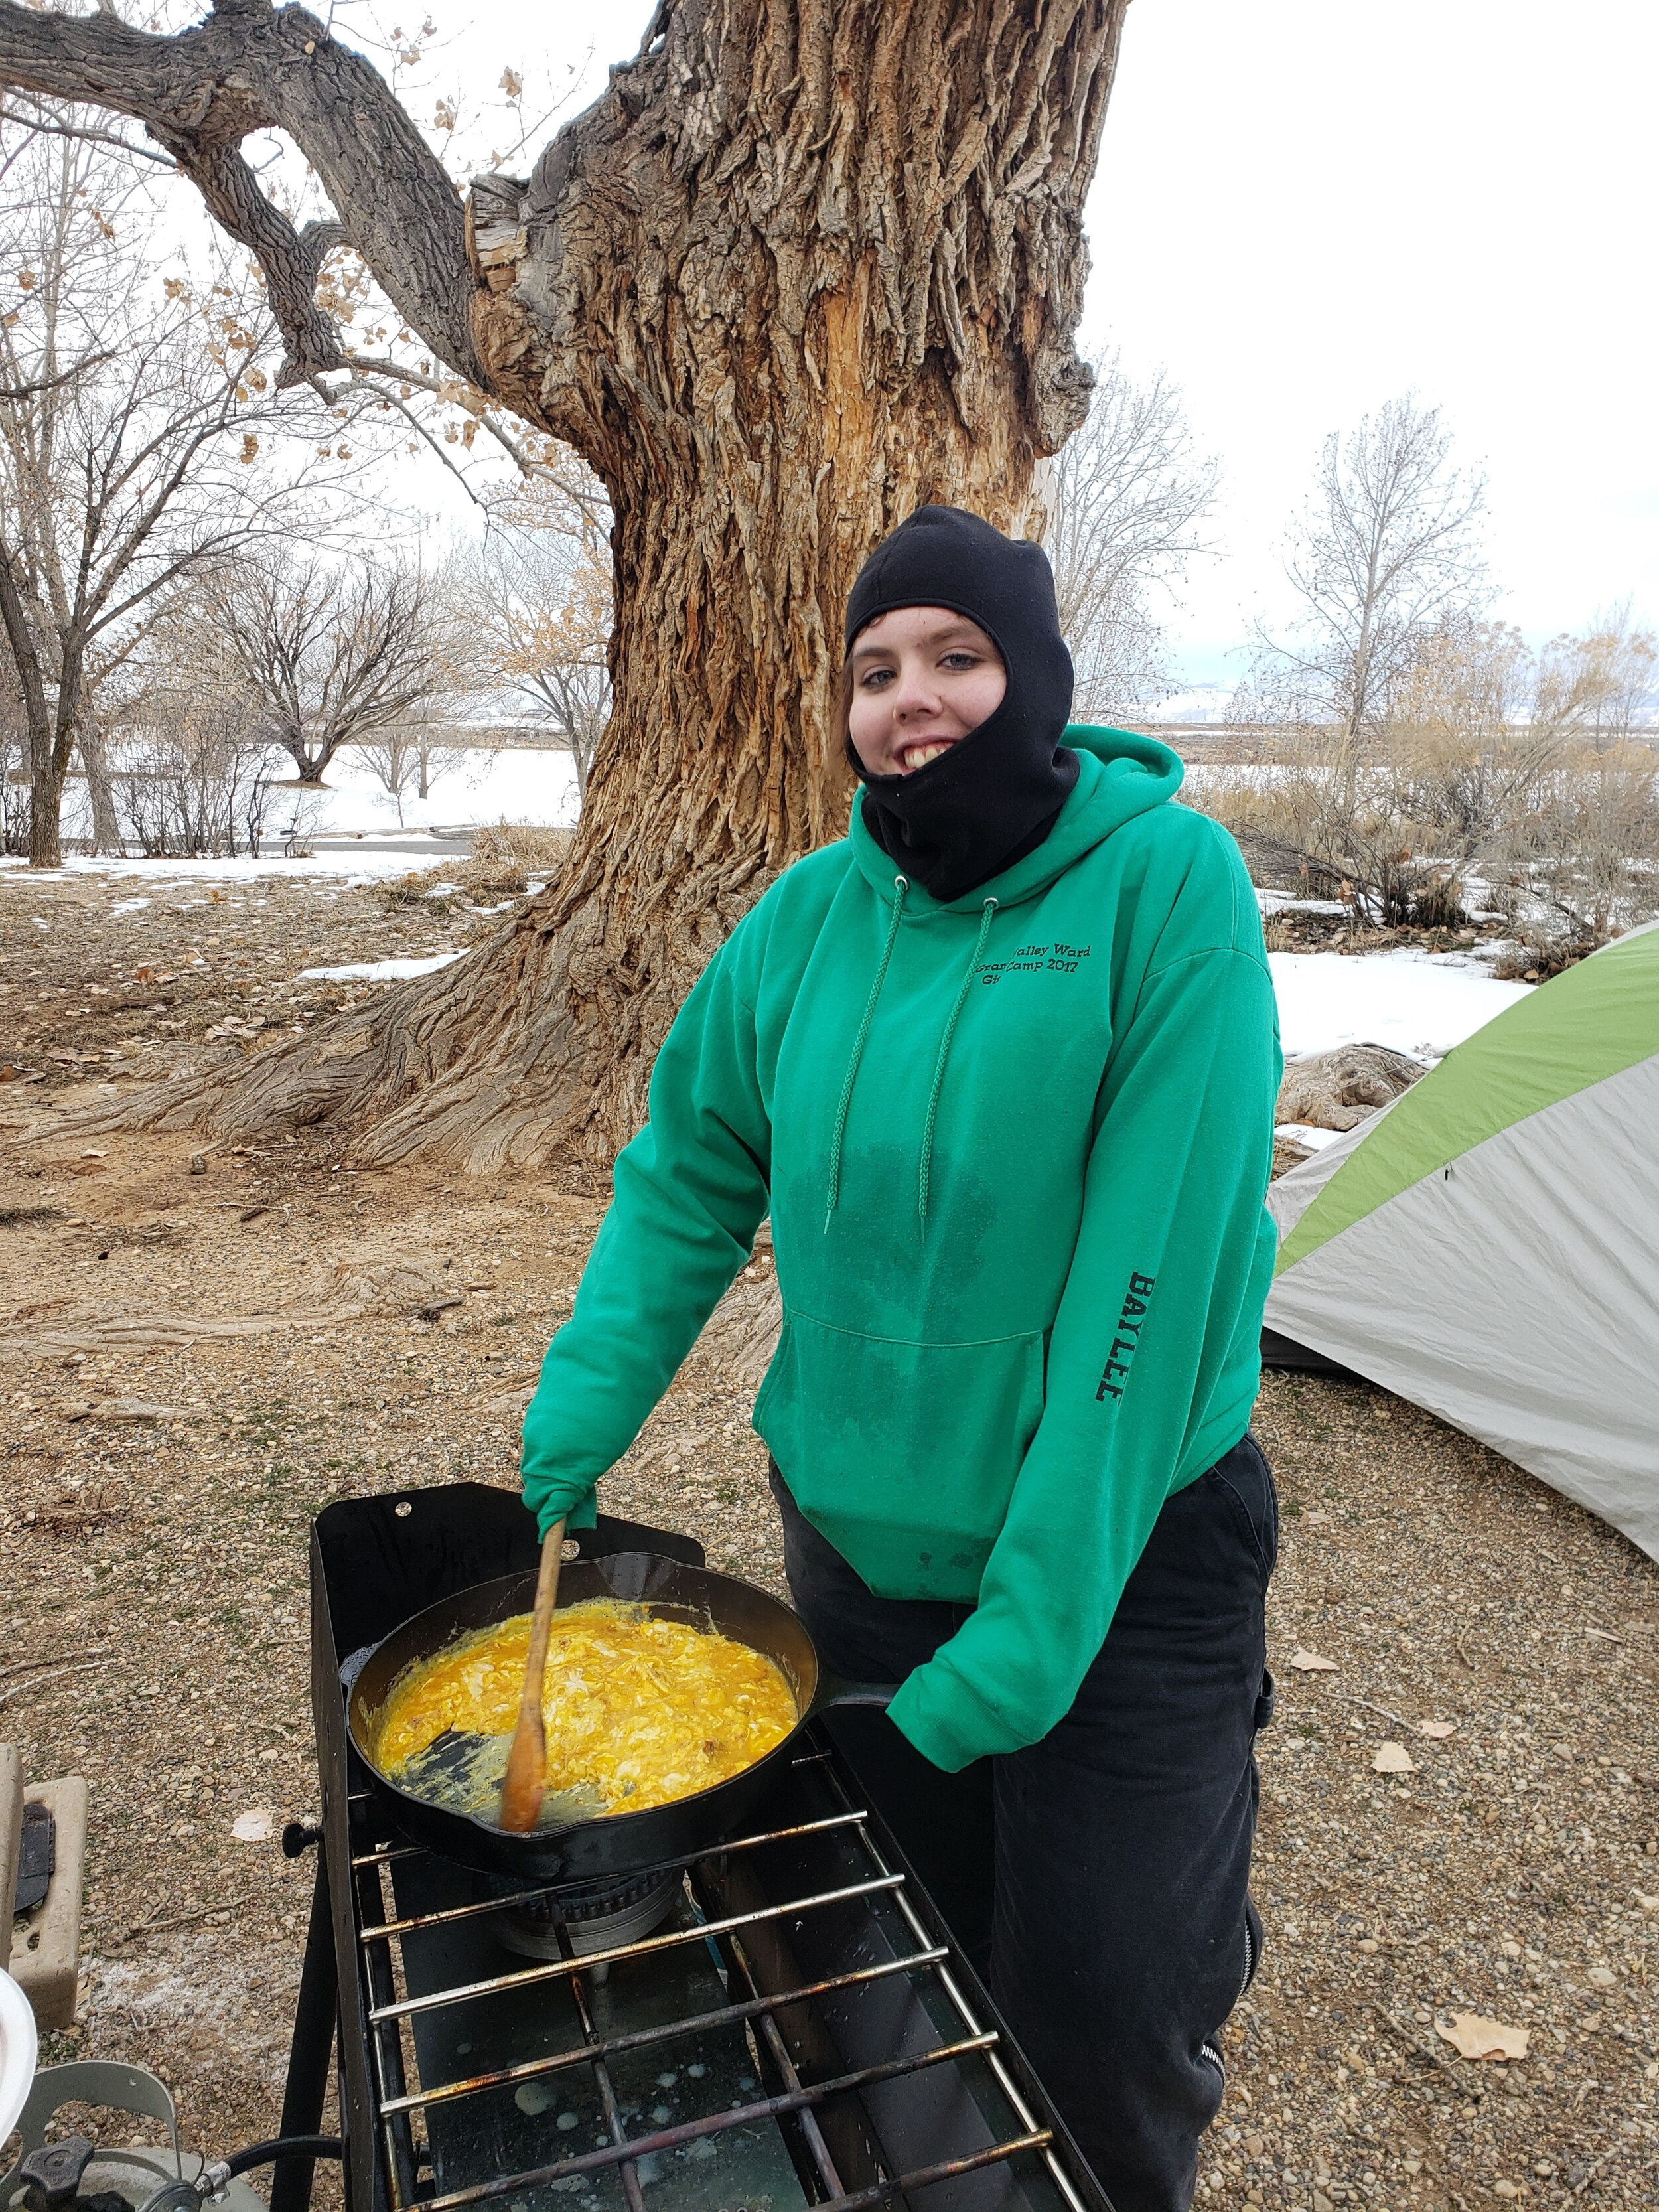 PHOTO COURTESY GARFIELD COUNTY OUTDOORS  Baylee Perkins, a senior at Grand Valley High School, prepares breakfast for a group of students on a camping trip early last spring with Roaring Fork Outdoor Volunteers at Highline Lake in Fruita. They camped, hiked, and did some team building and leadership coaching to become closer as a team to kick off their service-centered internship.